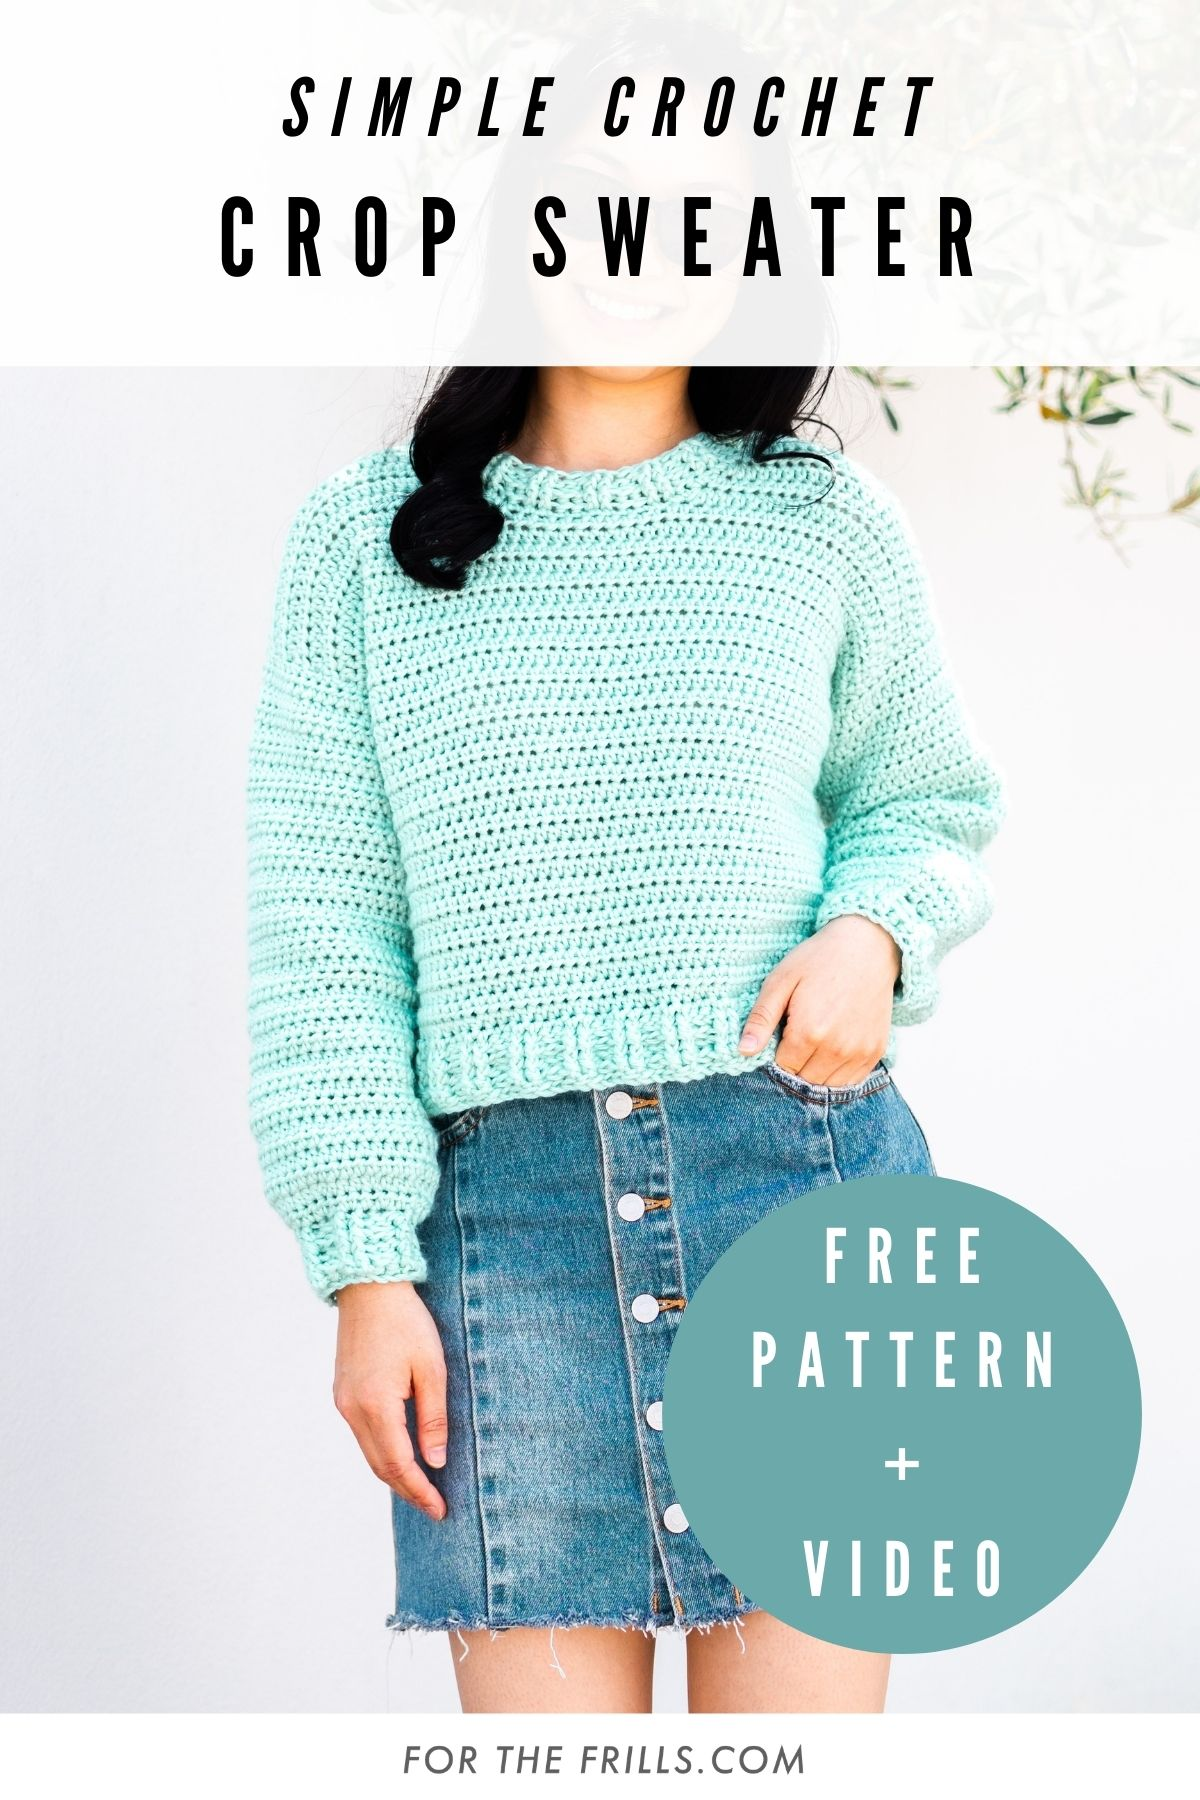 pin image of min green cropped crochet sweater with free crochet pattern and video text